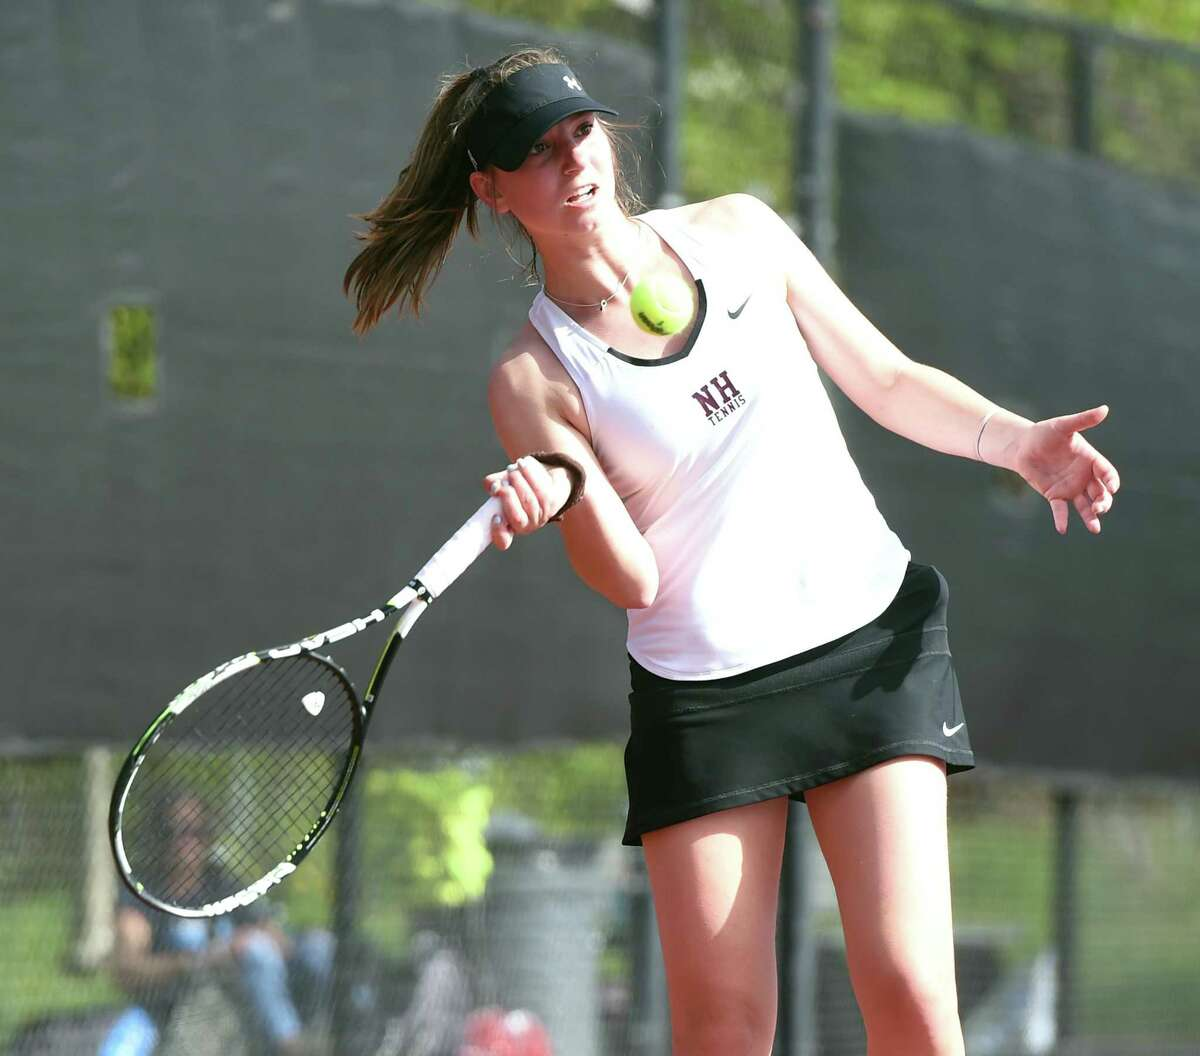 North Haven's Julia Migliorini hits a forehand against Hand's Sam Riordan on May 6.